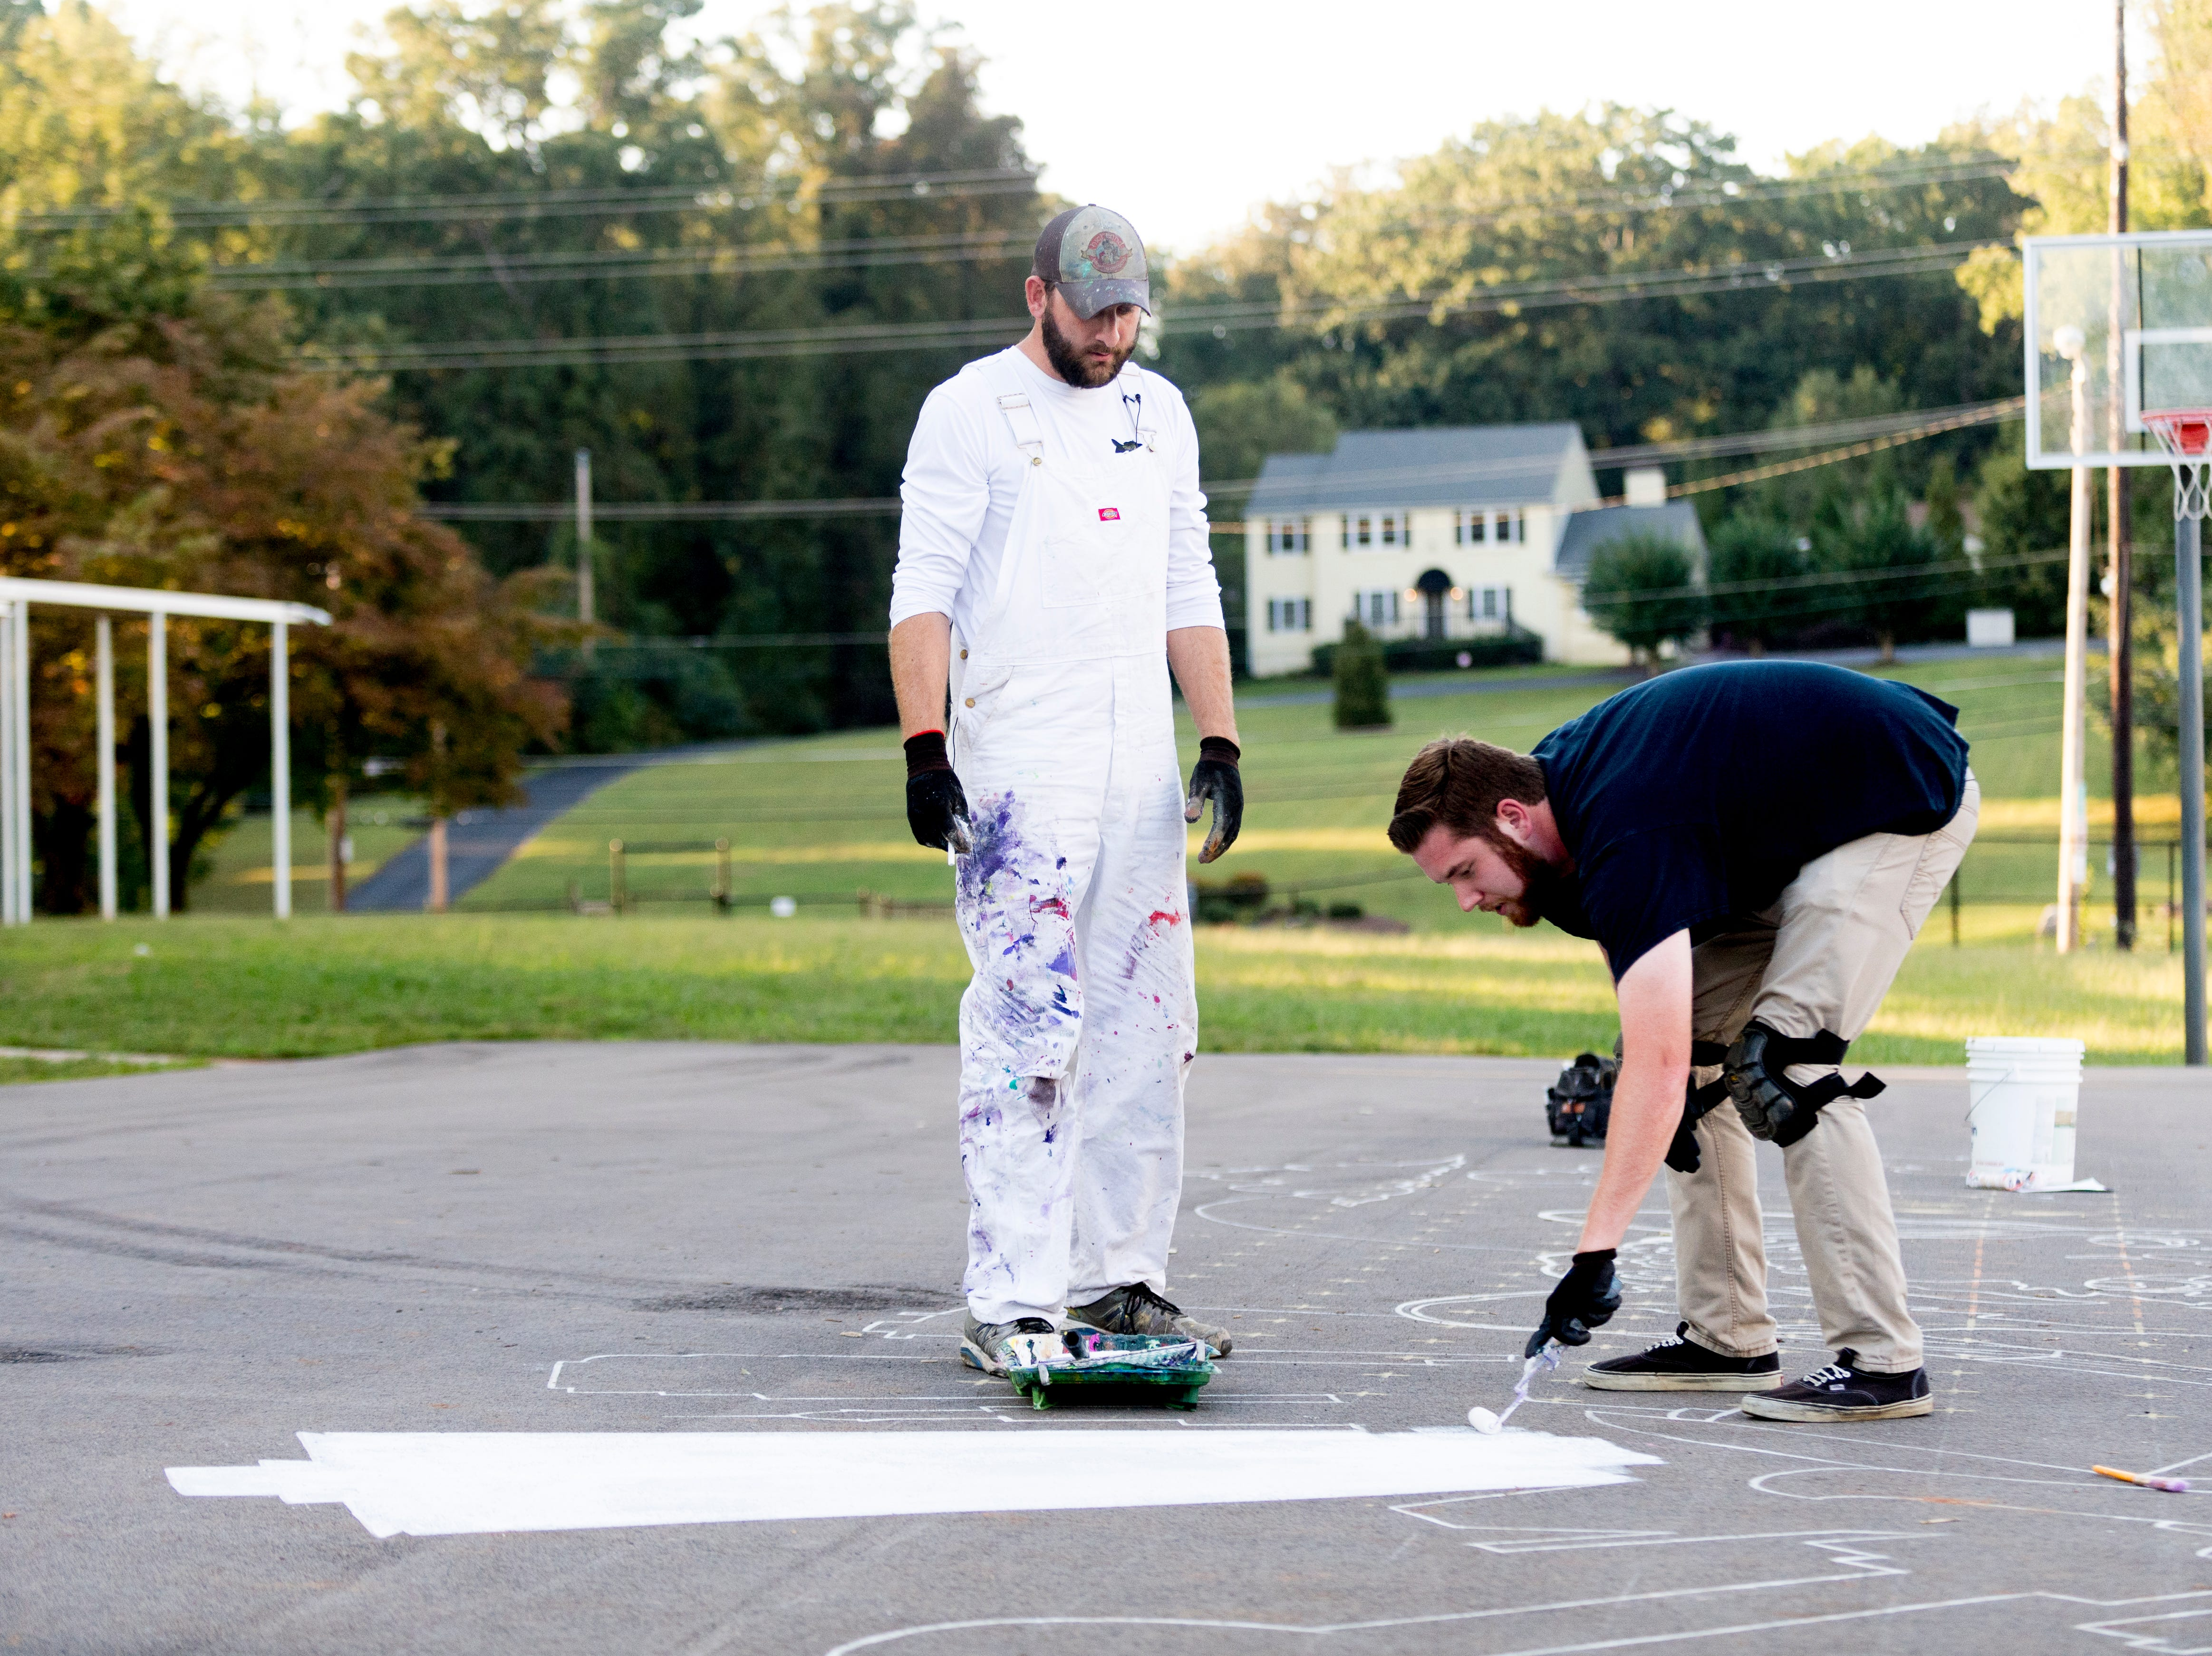 News Sentinel reporter Ryan Wilusz and local muralist Curtis Glover work on a mural at the outdoor basketball court at Pond Gap Elementary School in Knoxville, Tennessee on Thursday, October 4, 2018. Glover is quickly becoming known in the Knoxville area for his incredibly detailed murals.